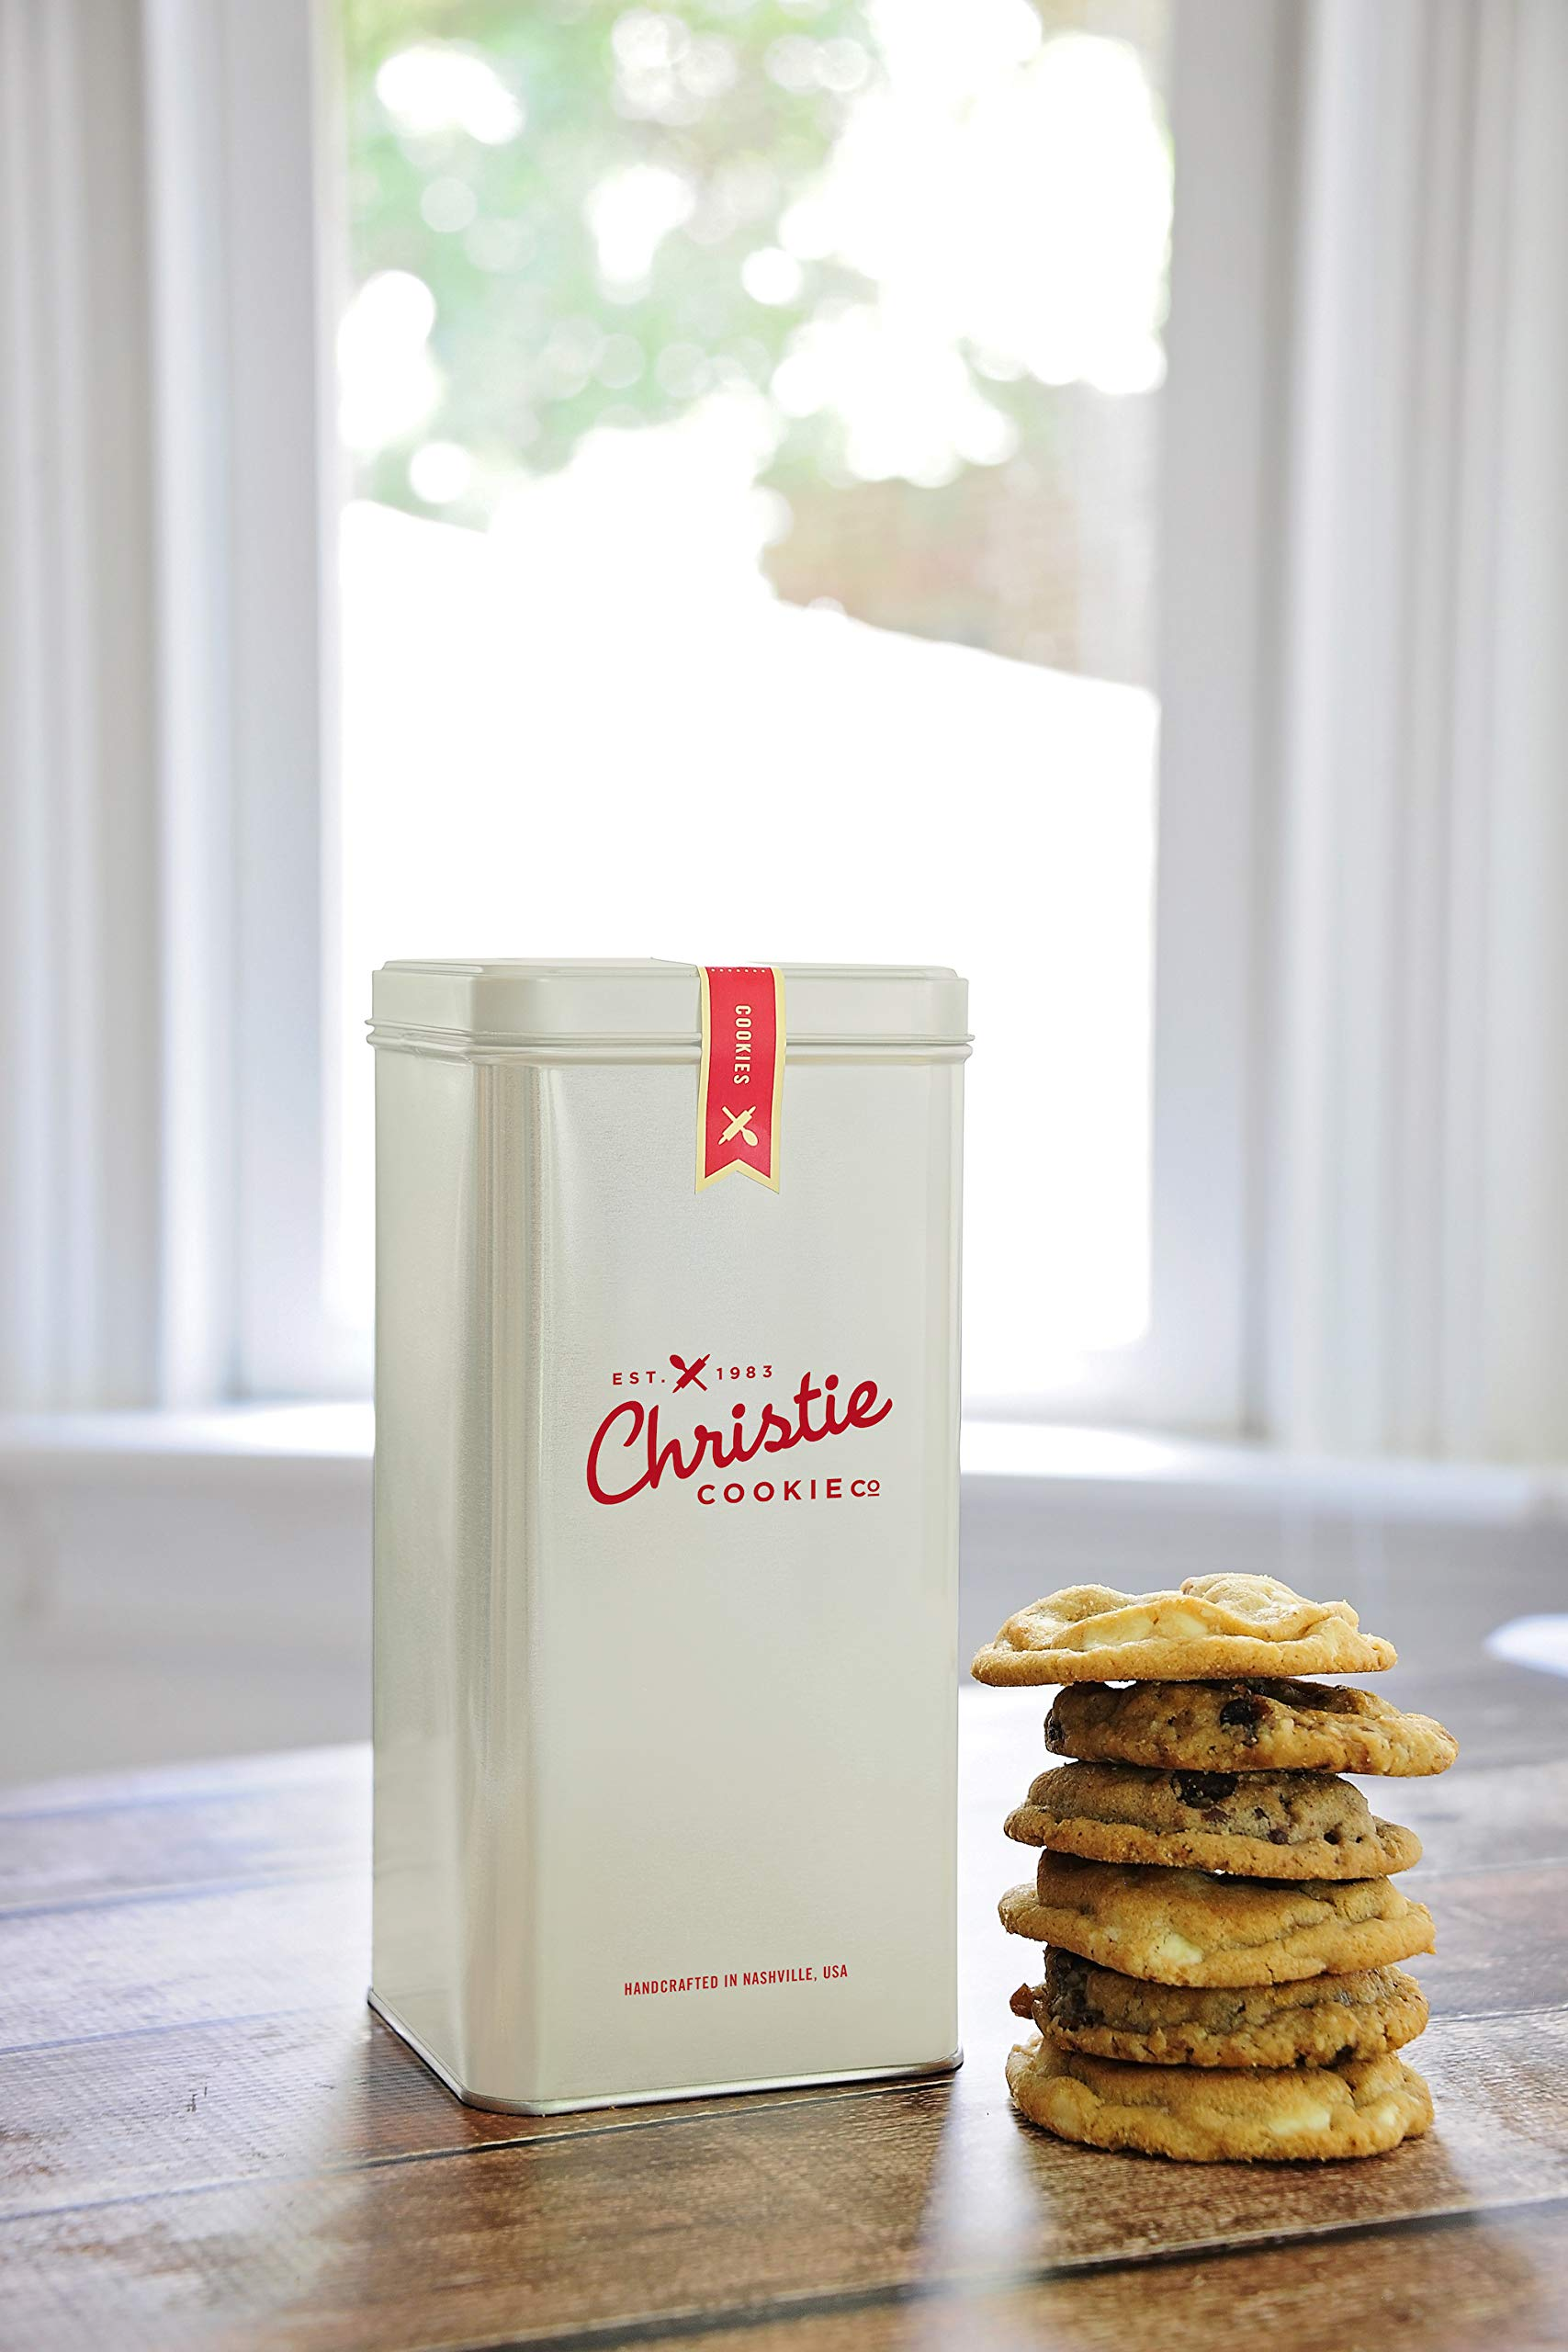 Christie Cookies, Gourmet Assorted Cookies, 12 Fresh-Baked Cookies in Cream Tin, No Added Preservatives, 100% Real Butter, Holiday & Corporate Gift Tin, Birthday Gift Idea for Men & Women by Christie Cookie Co. (Image #1)